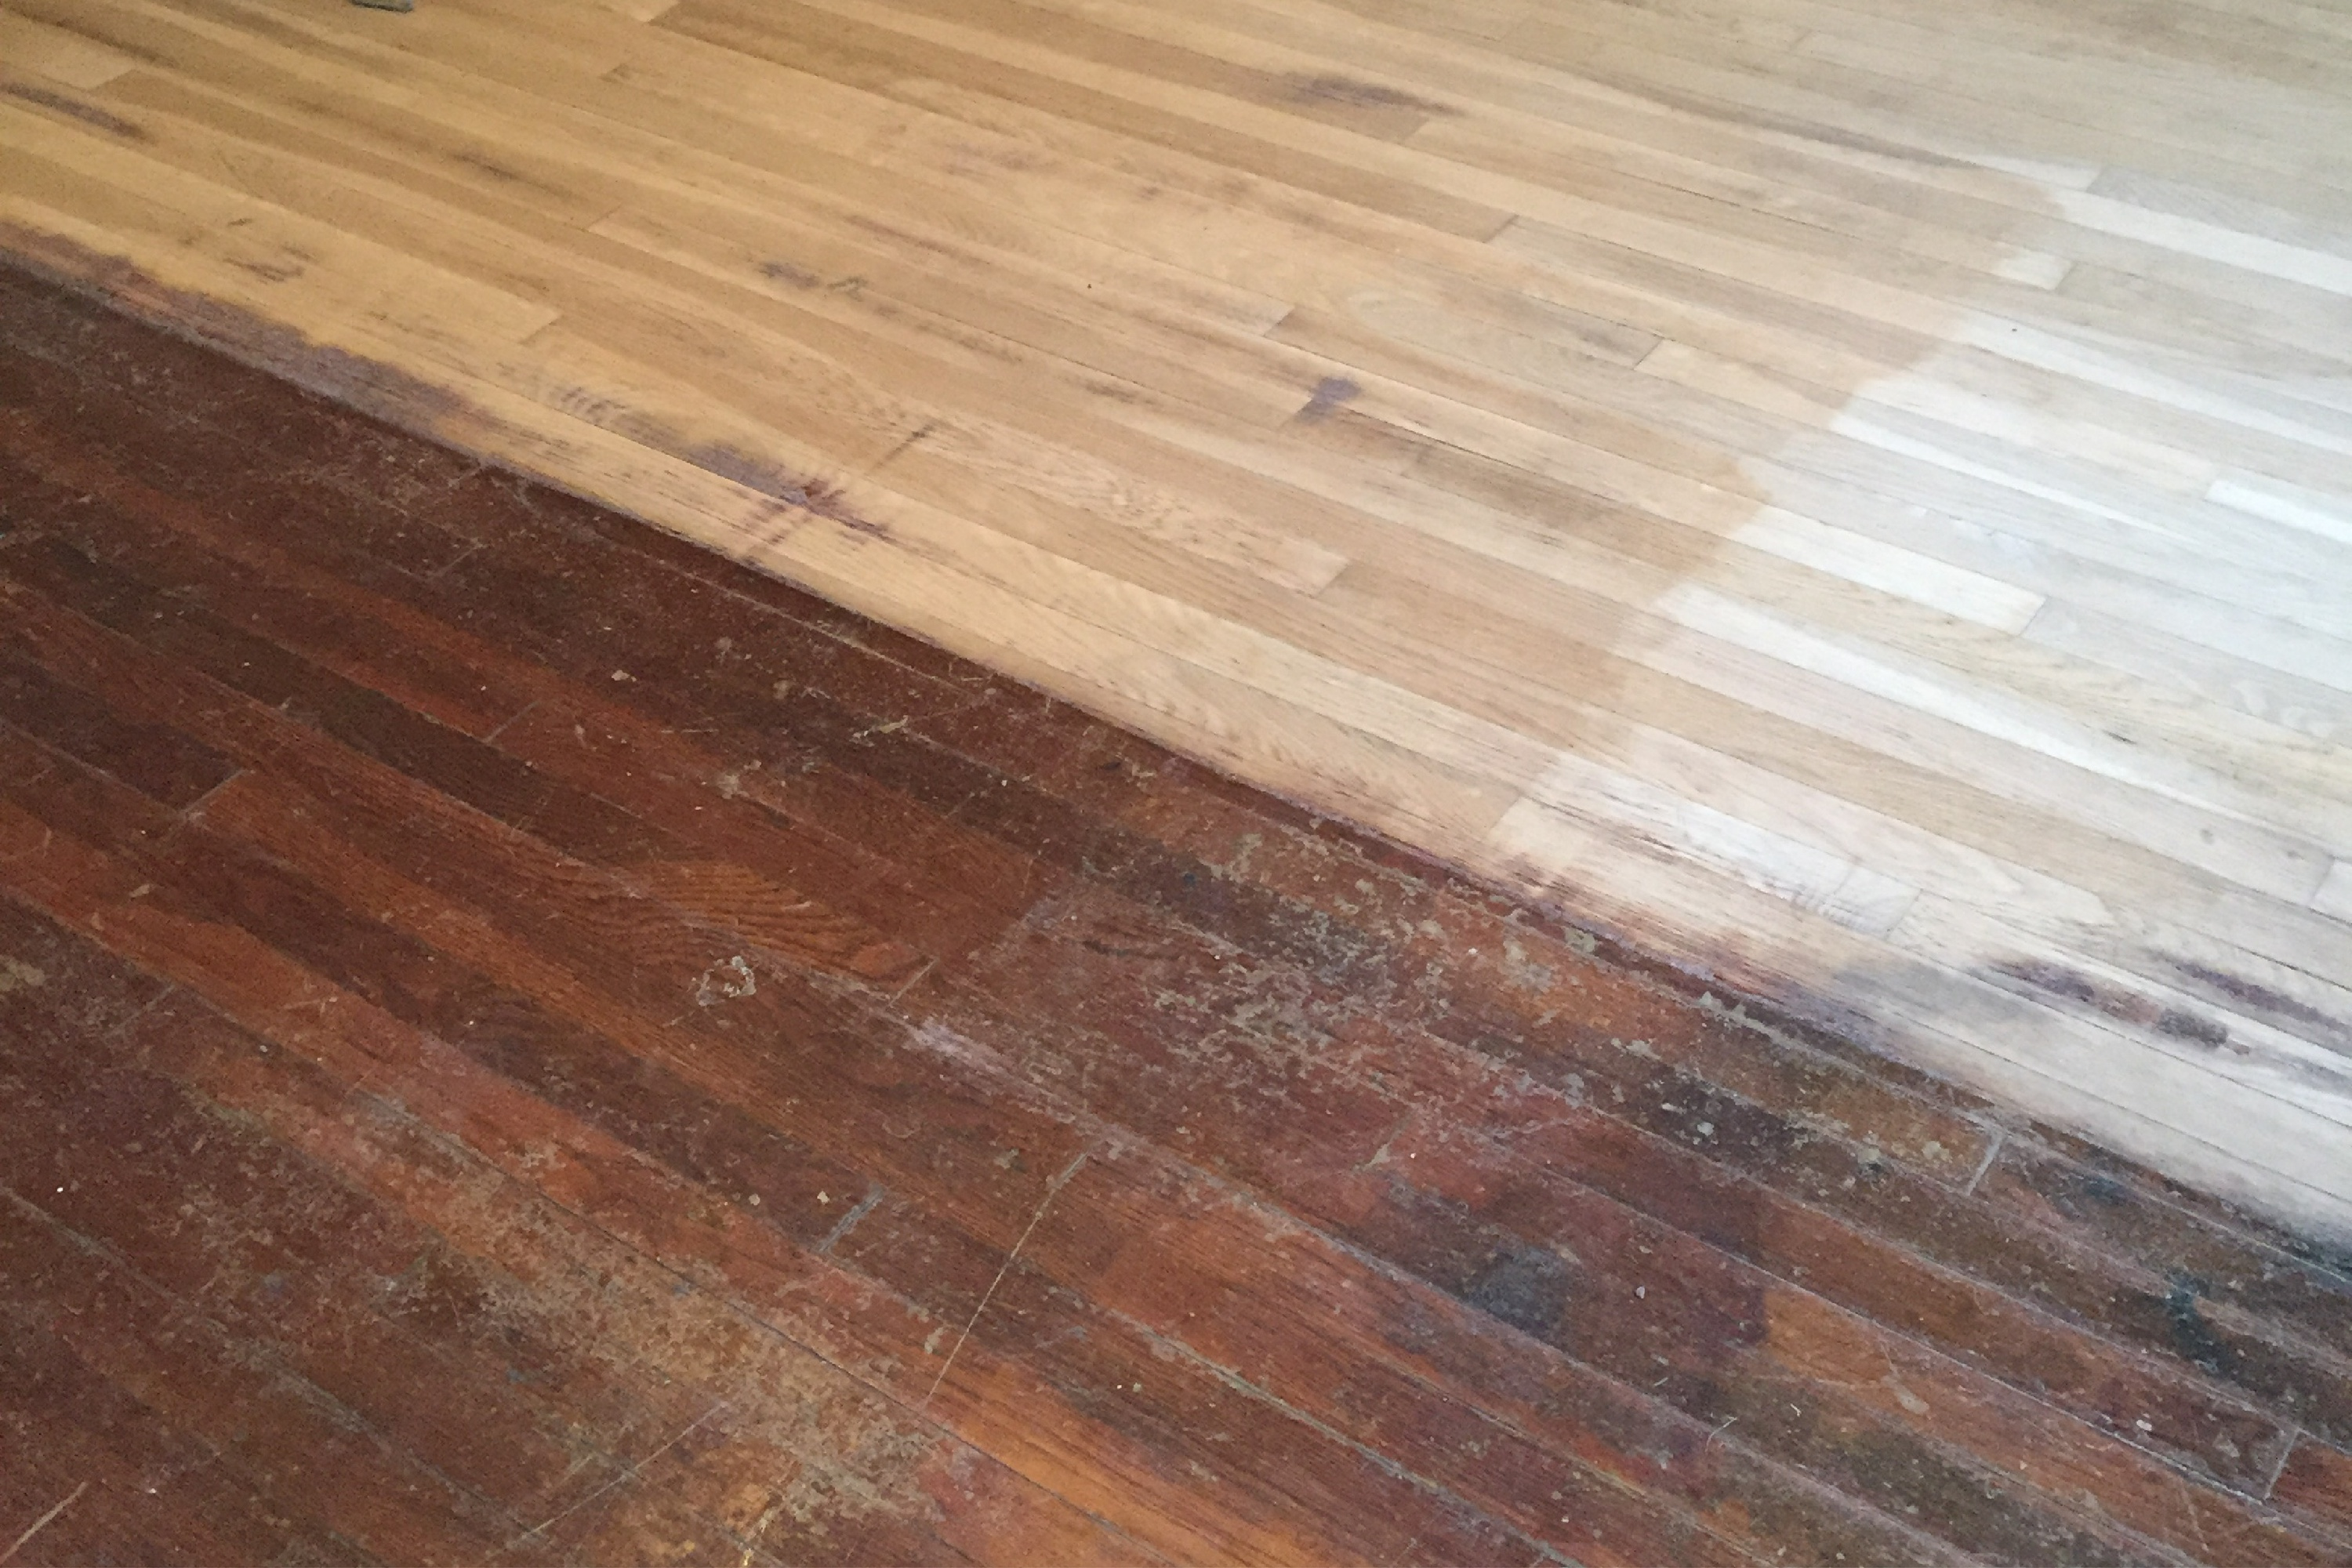 Common Wood Flooring Issues & How to Solve Them